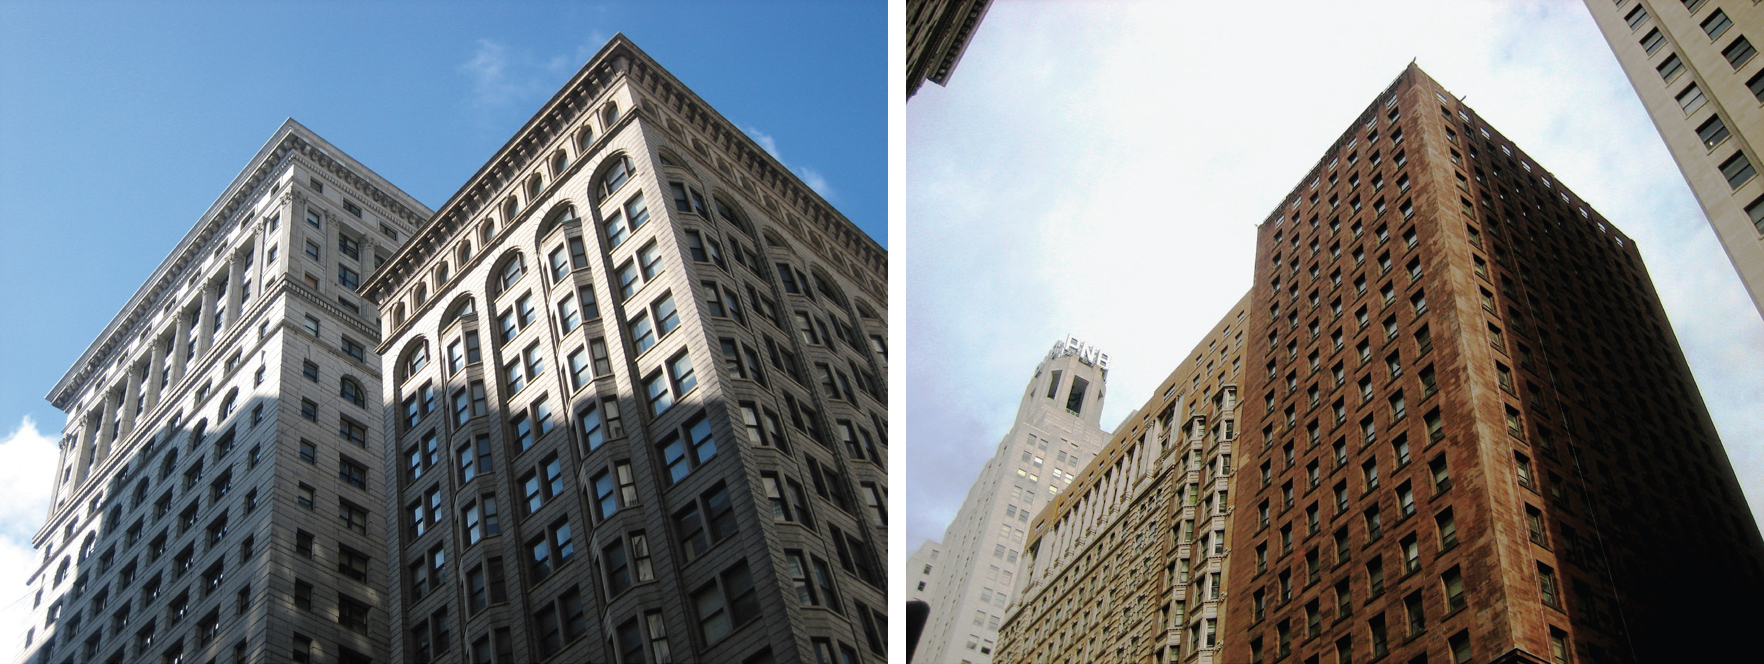 Land Title Building (l) and Real Estate Title and Trust, and North American buildings (r)